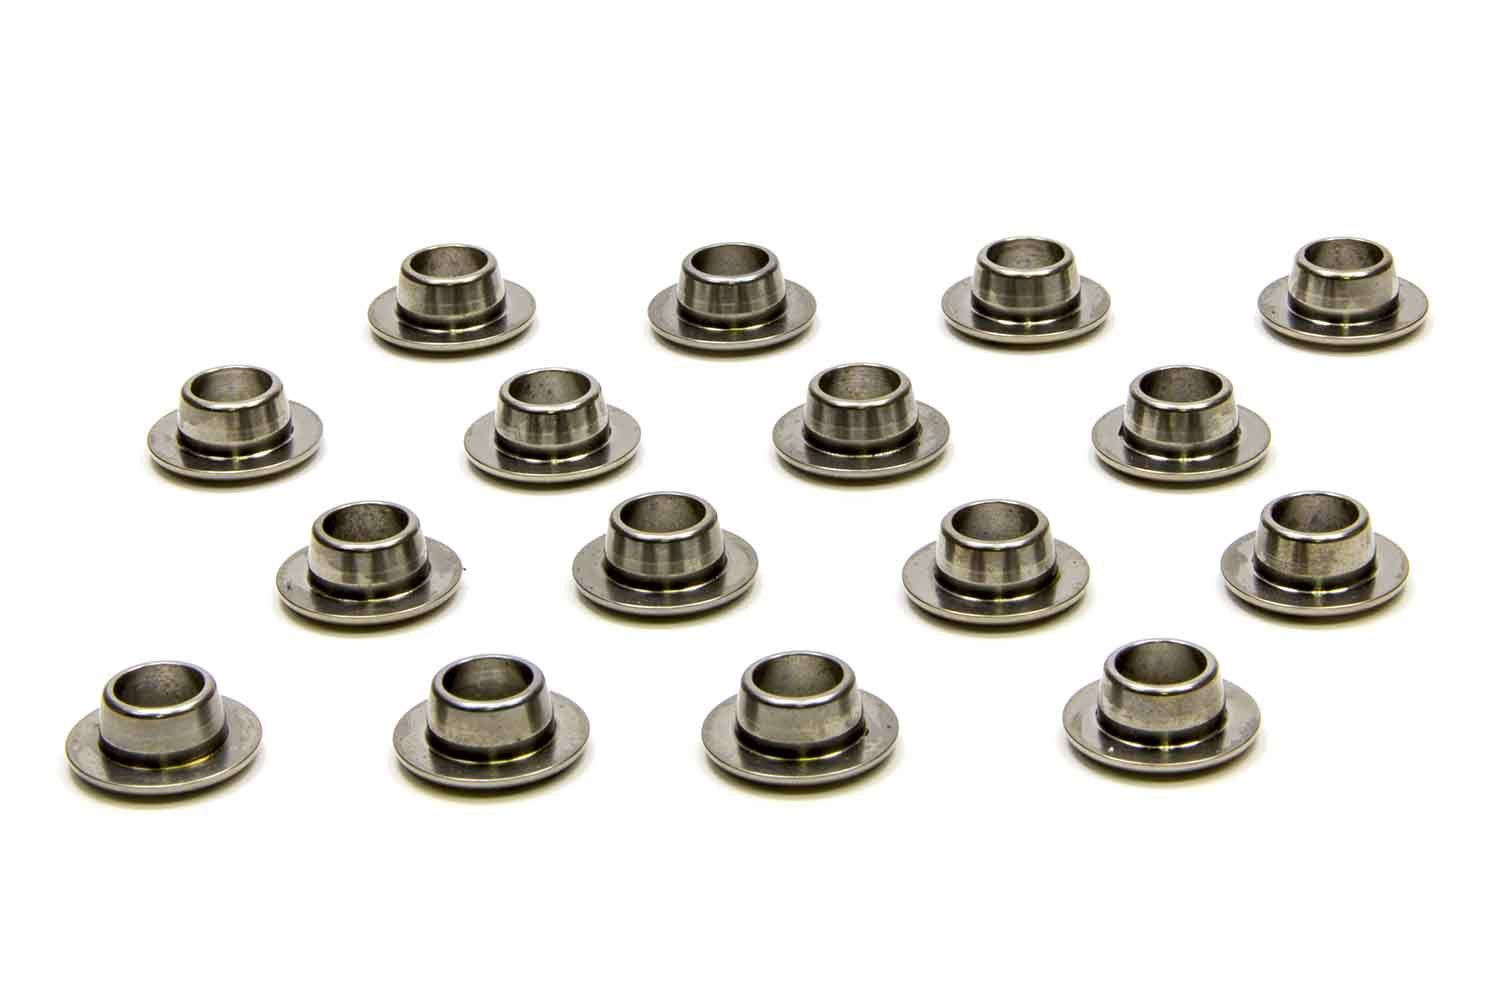 PAC Racing Springs PAC-R510 Valve Spring Retainer, 500 Series, 10 Degree, 0.640 in OD Step, Beehive Spring, Titanium, Set of 16